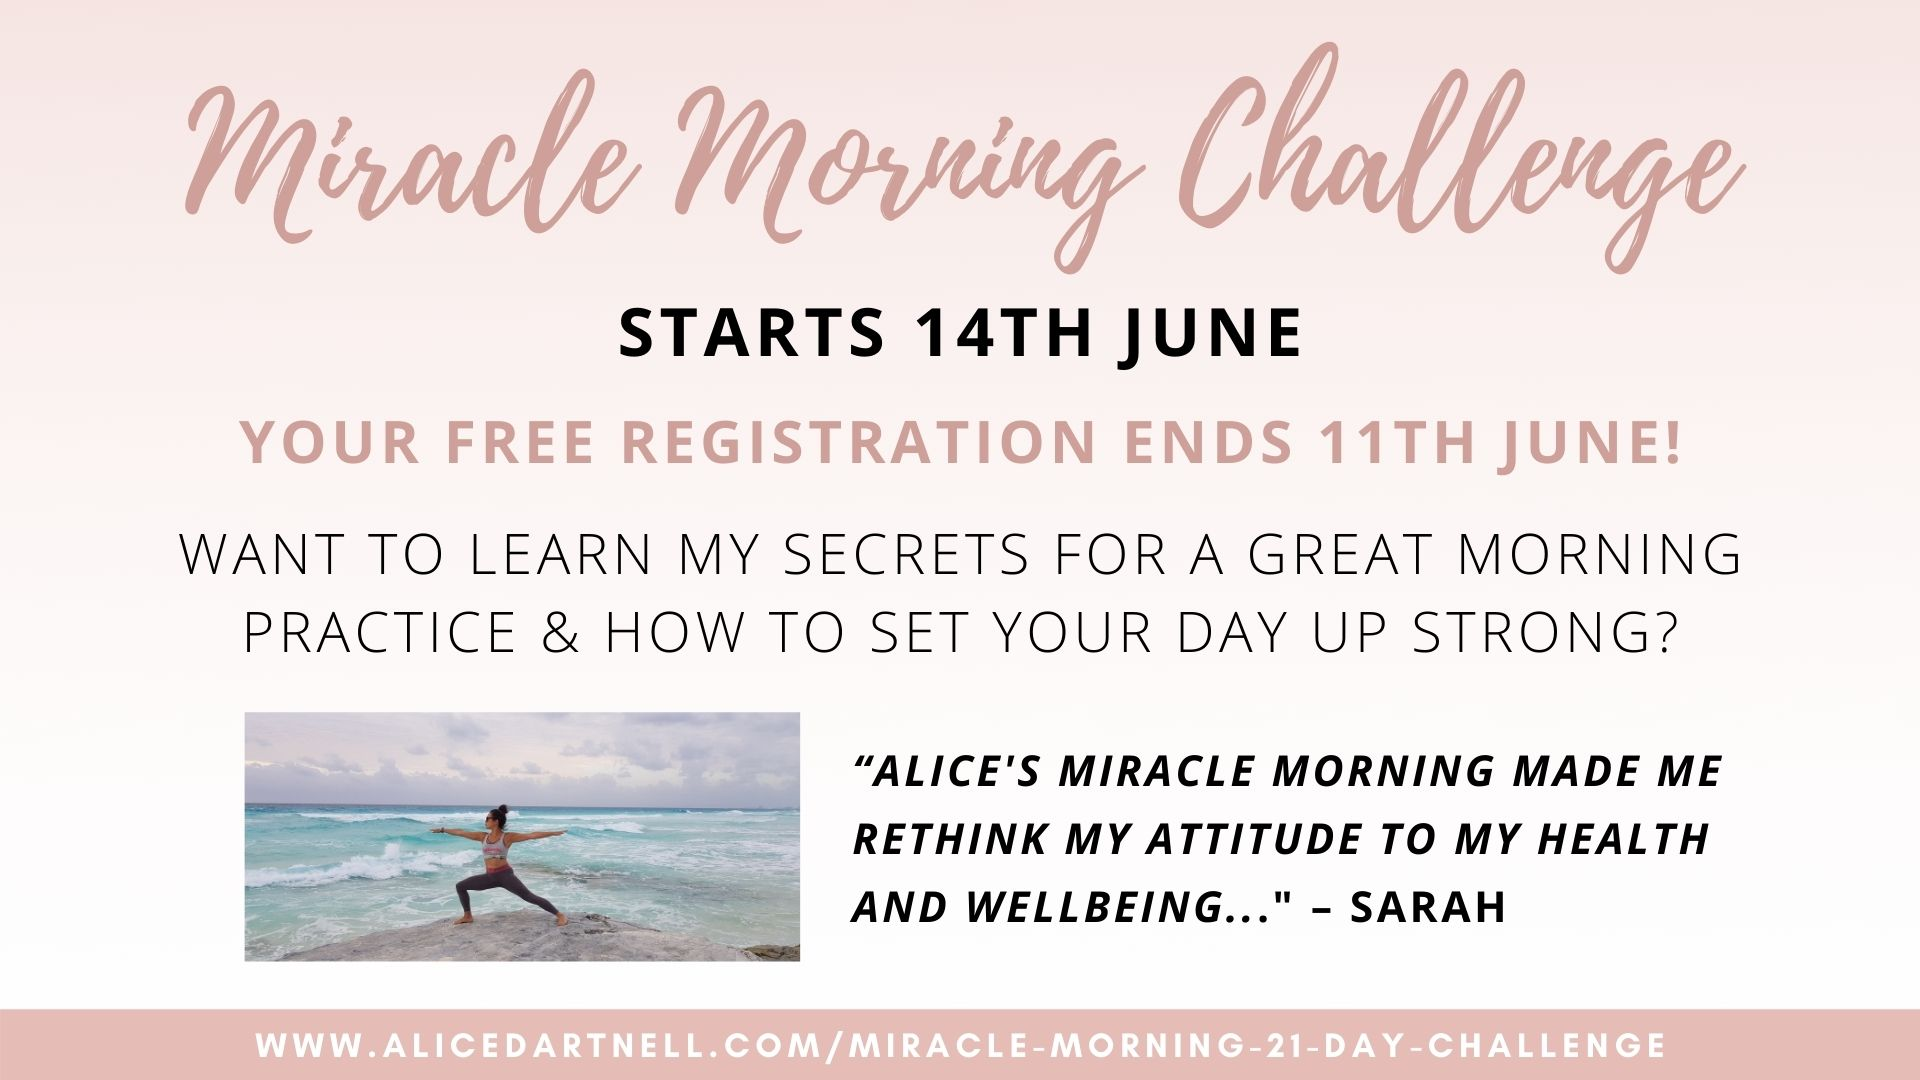 Alice Dartnell London Life Coach Miracle Morning Challenge 2021 Hal Elrod, author